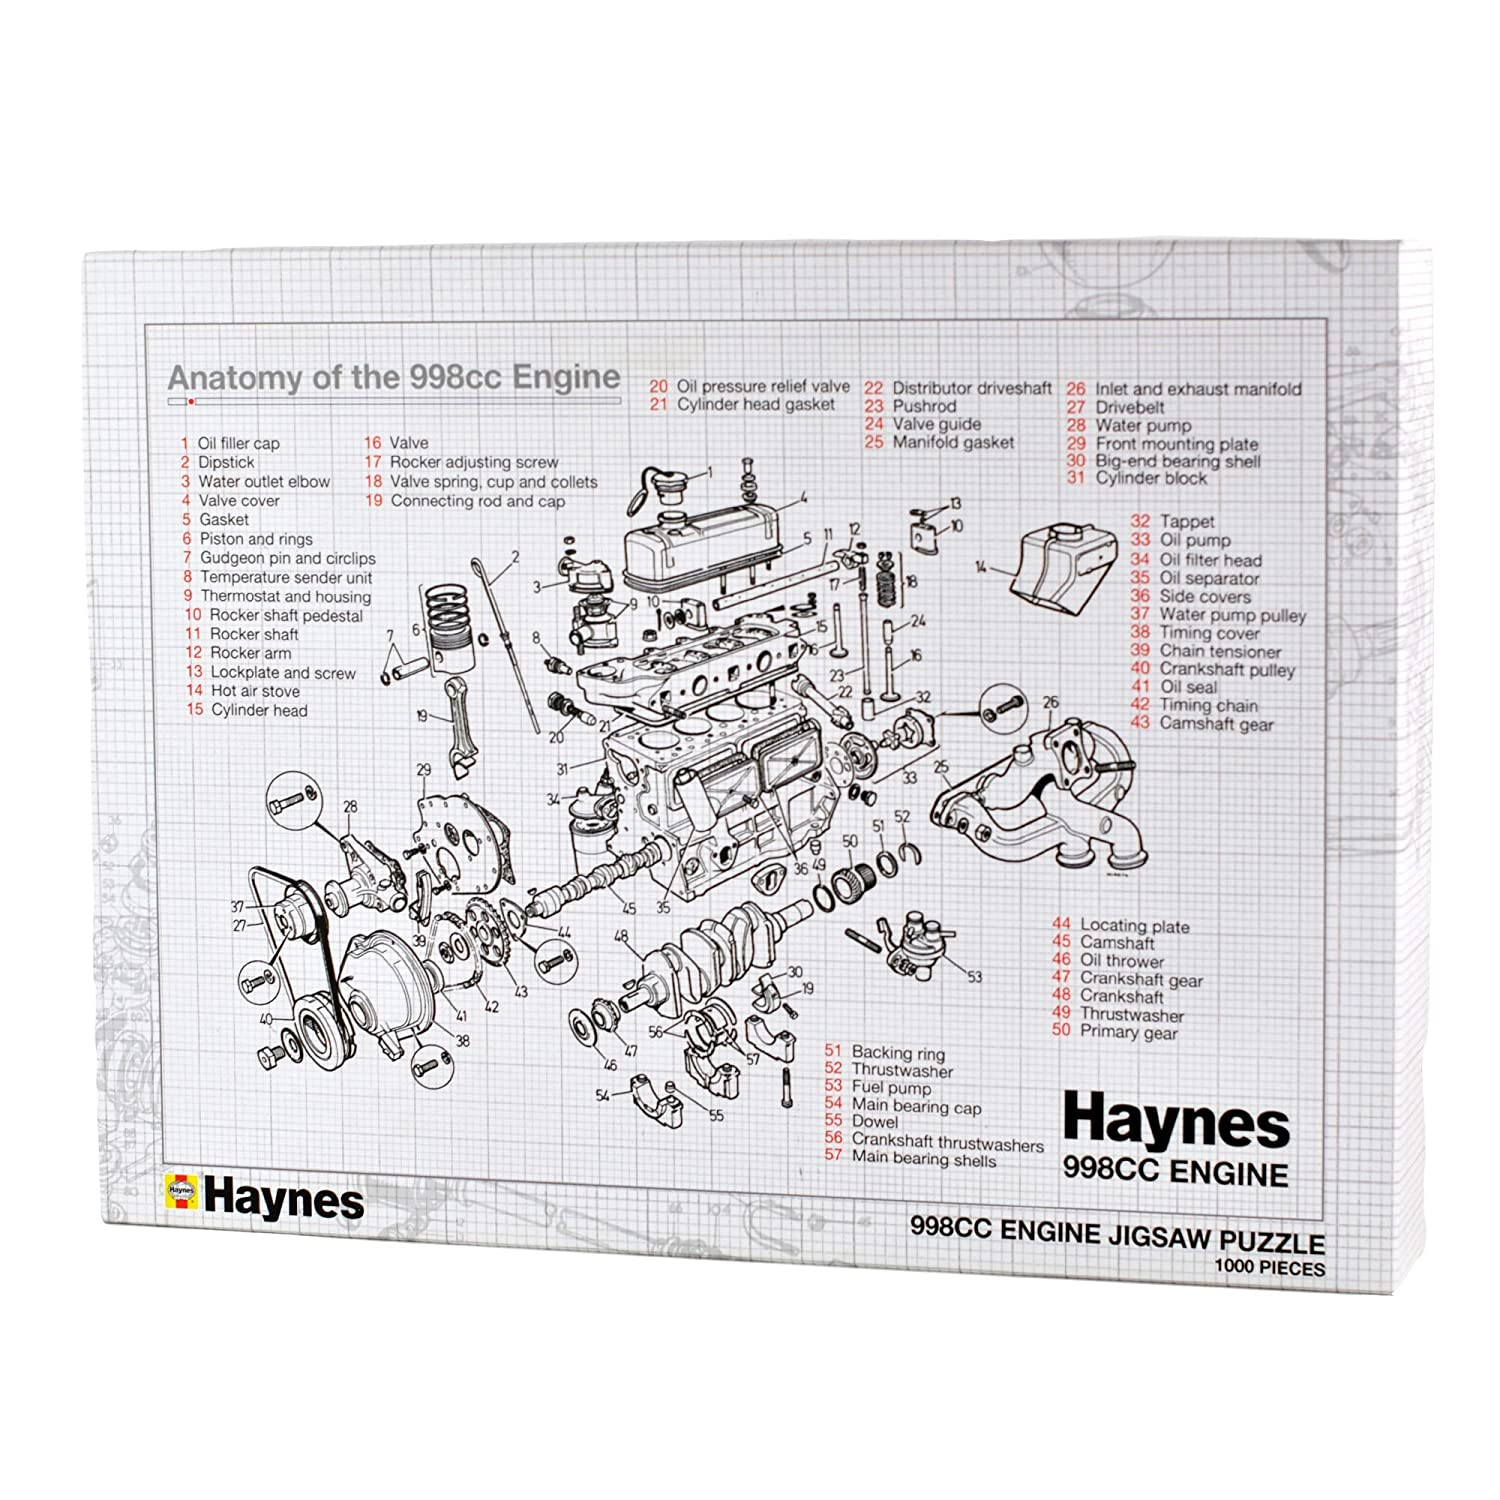 Haynes Engine Jigsaw: Amazon.co.uk: Toys & Games